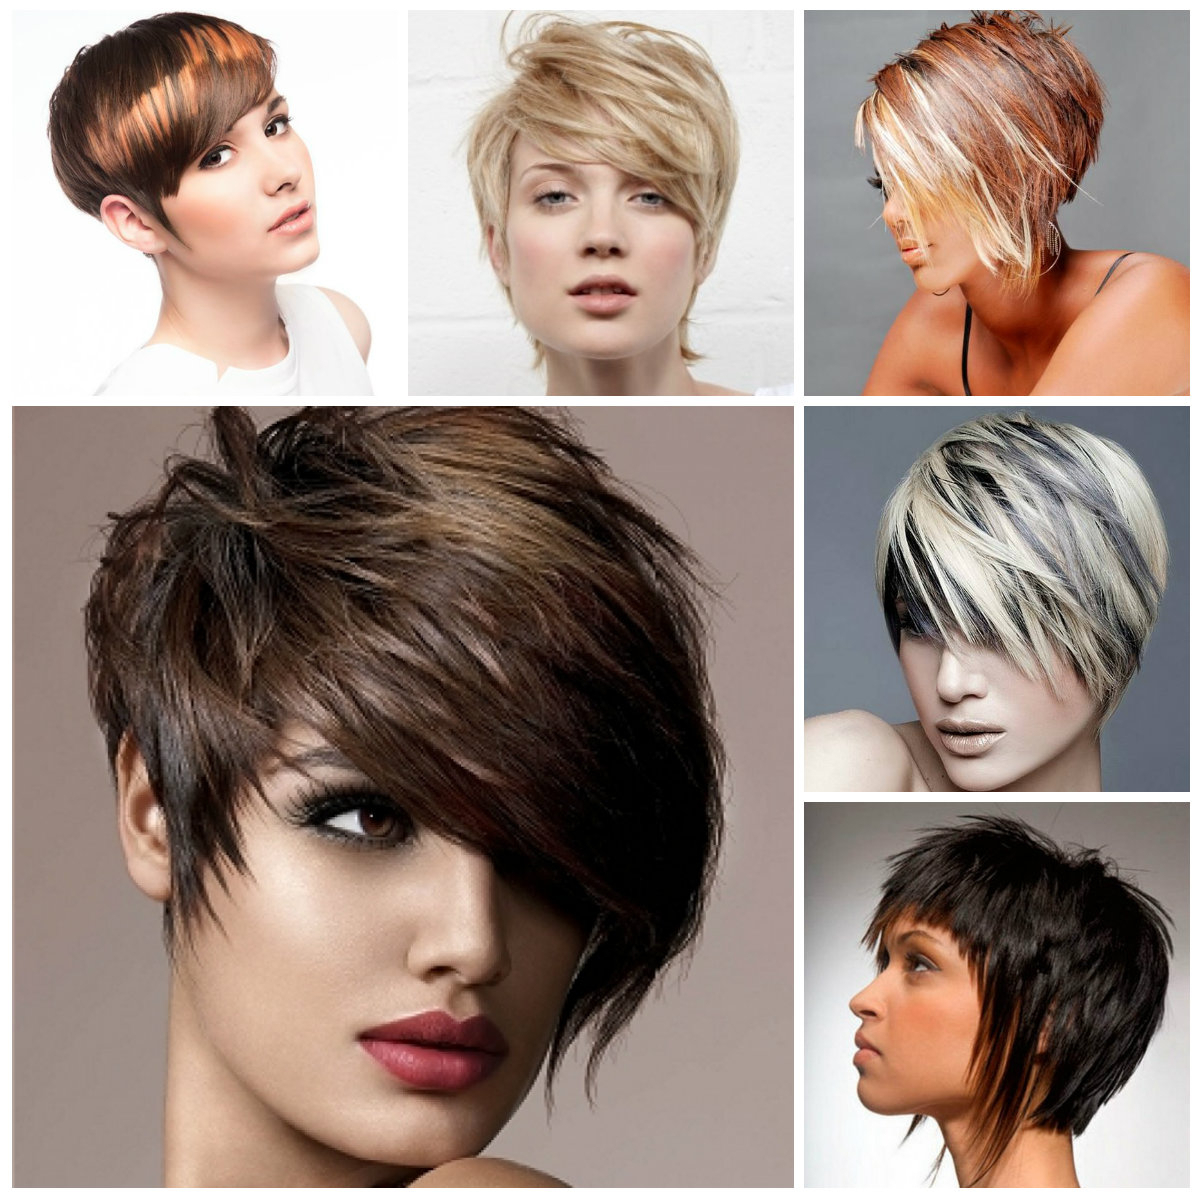 Layered Hairstyles | Hairstyles For Women 2019, Haircuts For Long Within Trendy Short Haircuts For Fine Hair (View 25 of 25)